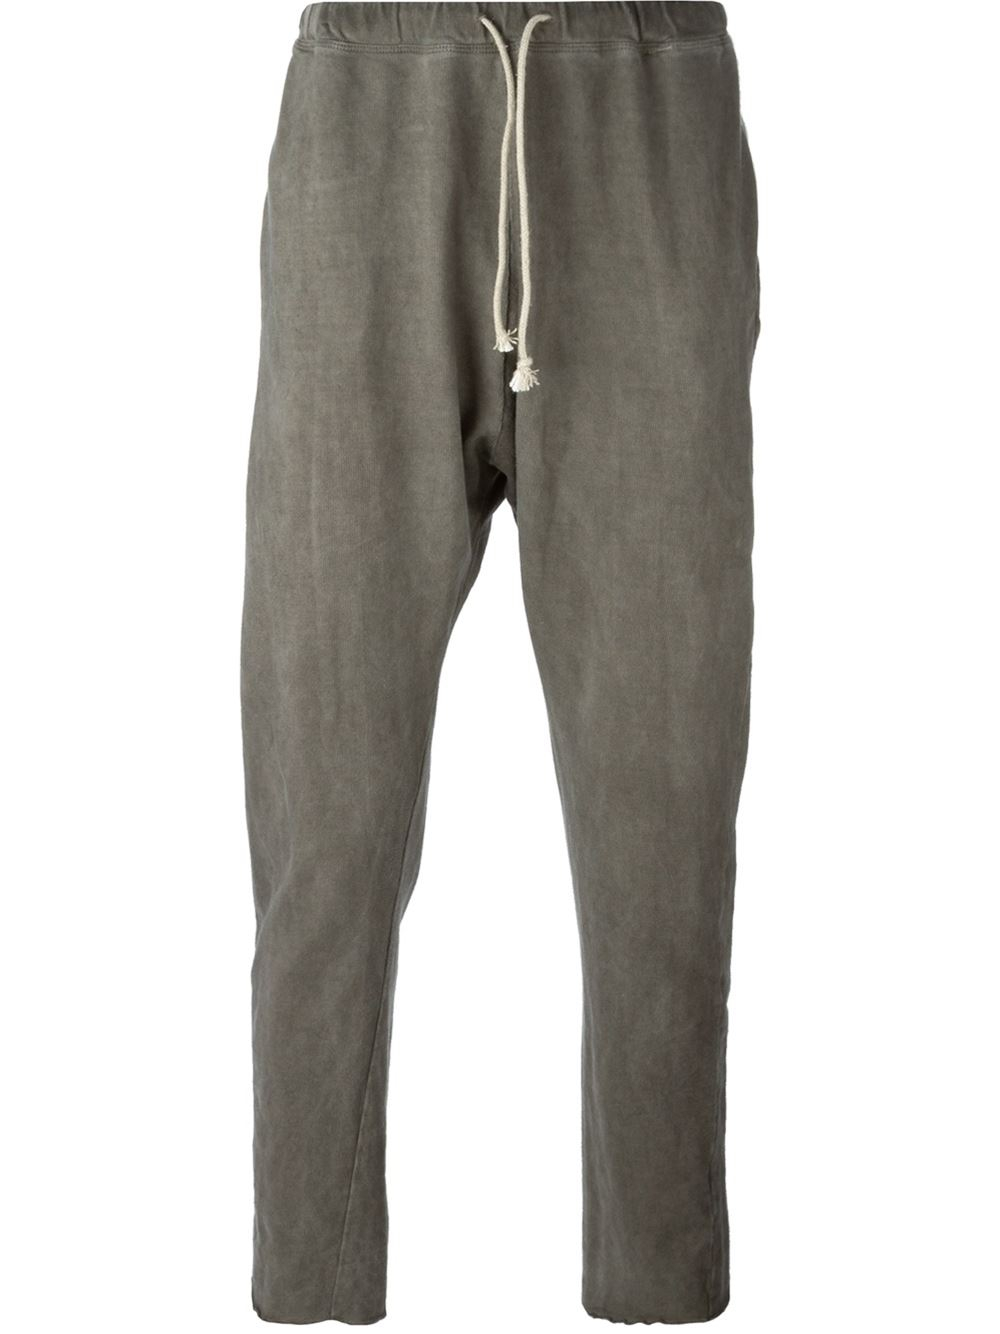 The softest Organic cotton unisex pants in grey marle. Adding super style with its drop crotch and featuring an embroidered Huxbear on the front. A staple piece for our little one's wardrobe this season. % Cotton GOTS certified.